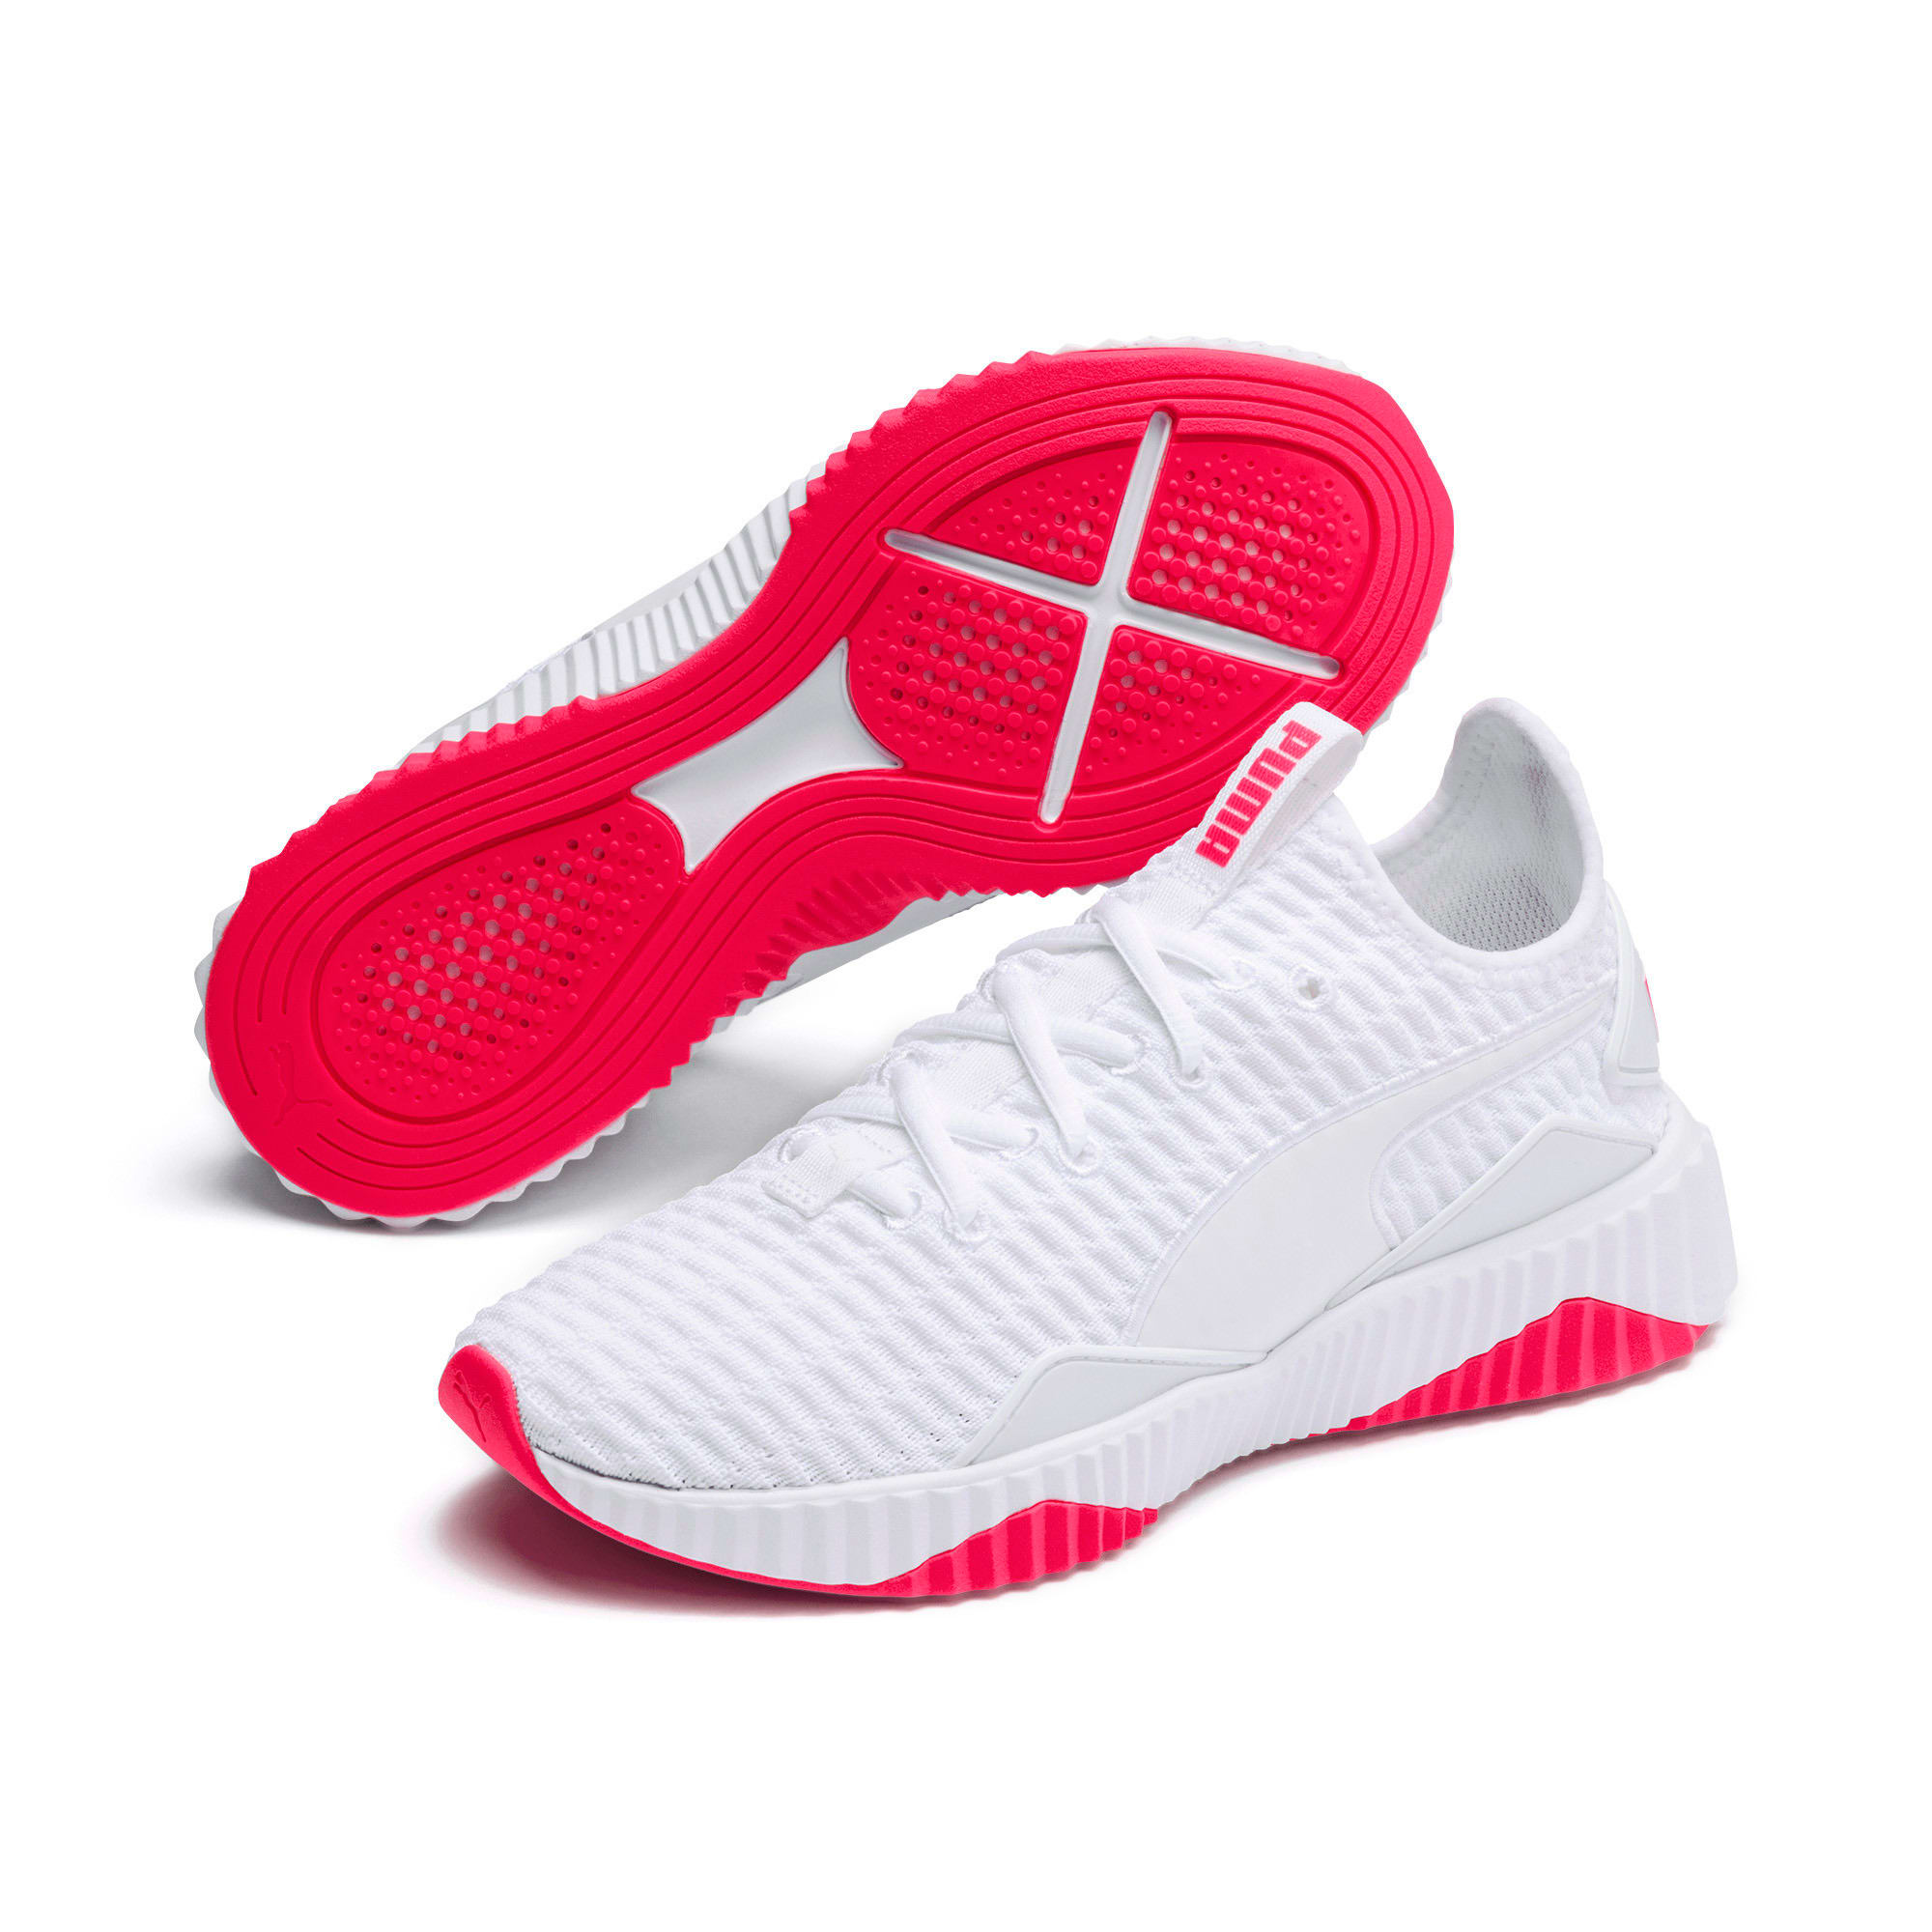 Thumbnail 4 of Defy Women's Trainers, Puma White-Pink Alert, medium-IND